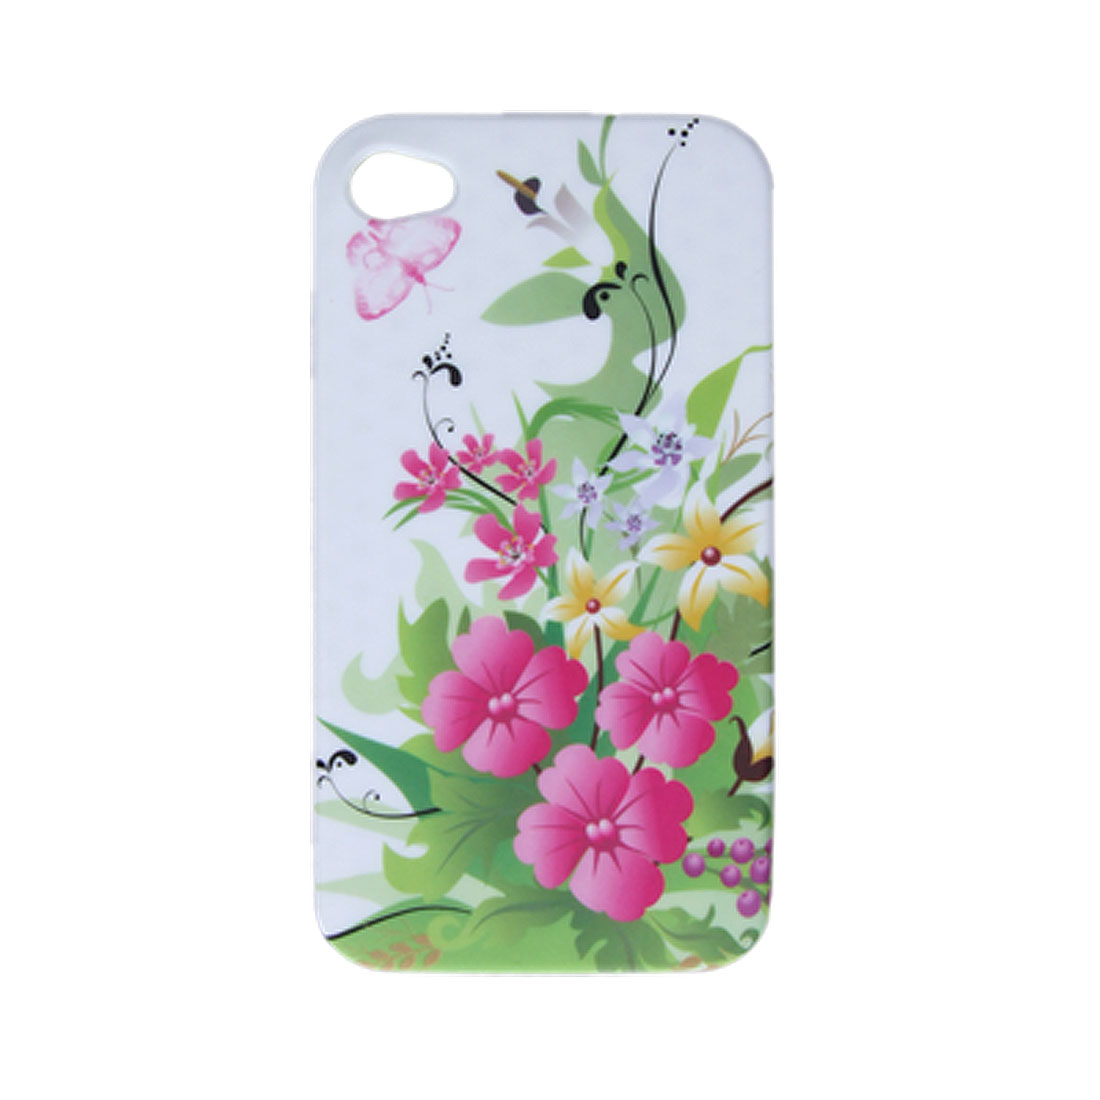 White Nonslip Inner Soft Plastic Back Flower Case for iPhone 4 4G